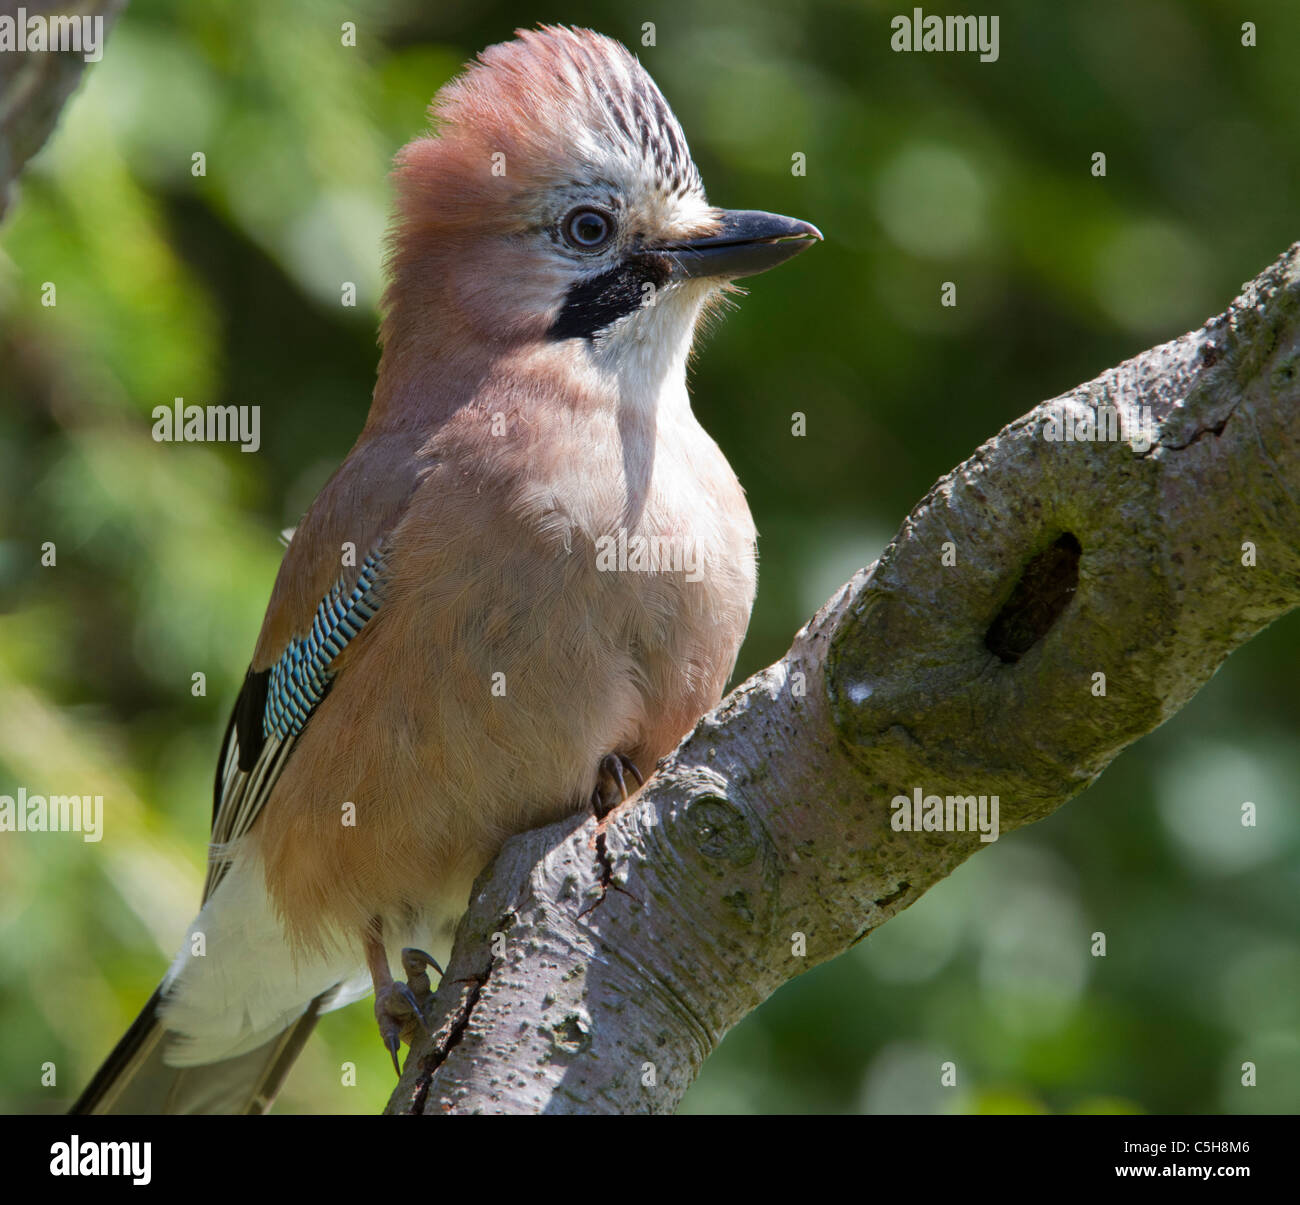 Adult Jay with crest feathers raised. Stock Photo